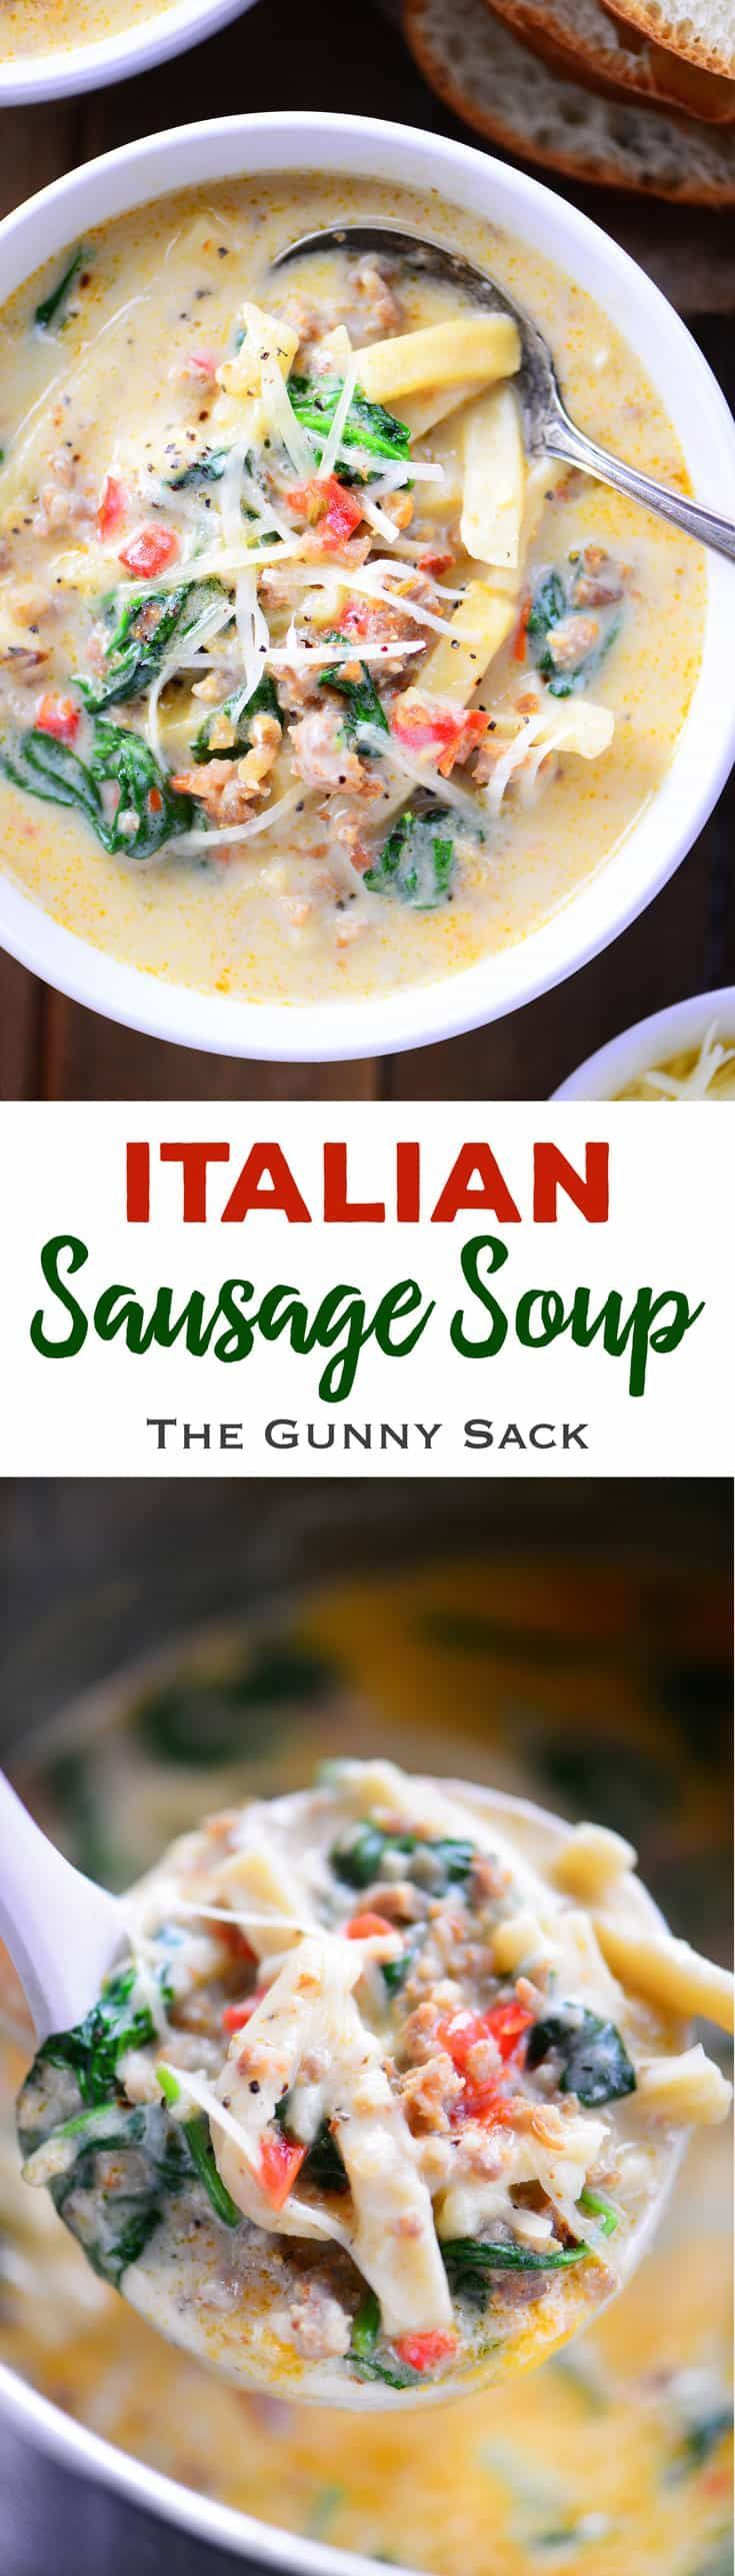 Italian Sausage Soup recipe for a creamy, comforting soup with noodles that is full of flavor and perfect for a family dinner during the cold winter months! #soup #comfortfood